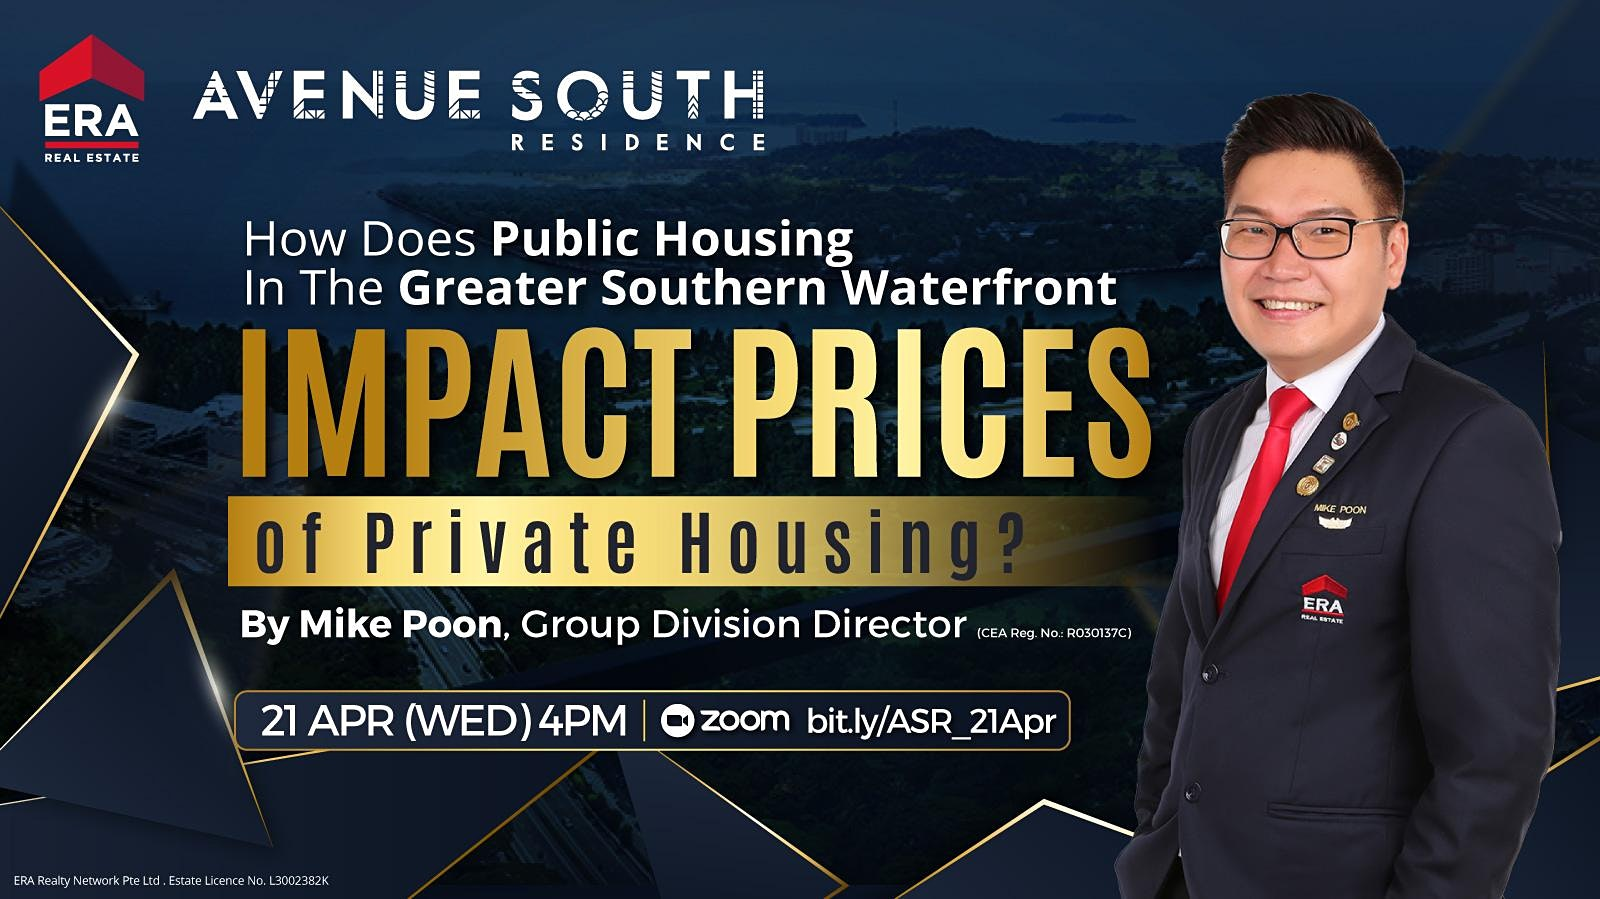 How Does Public Housing In The GSW Impact Prices of Private Housing